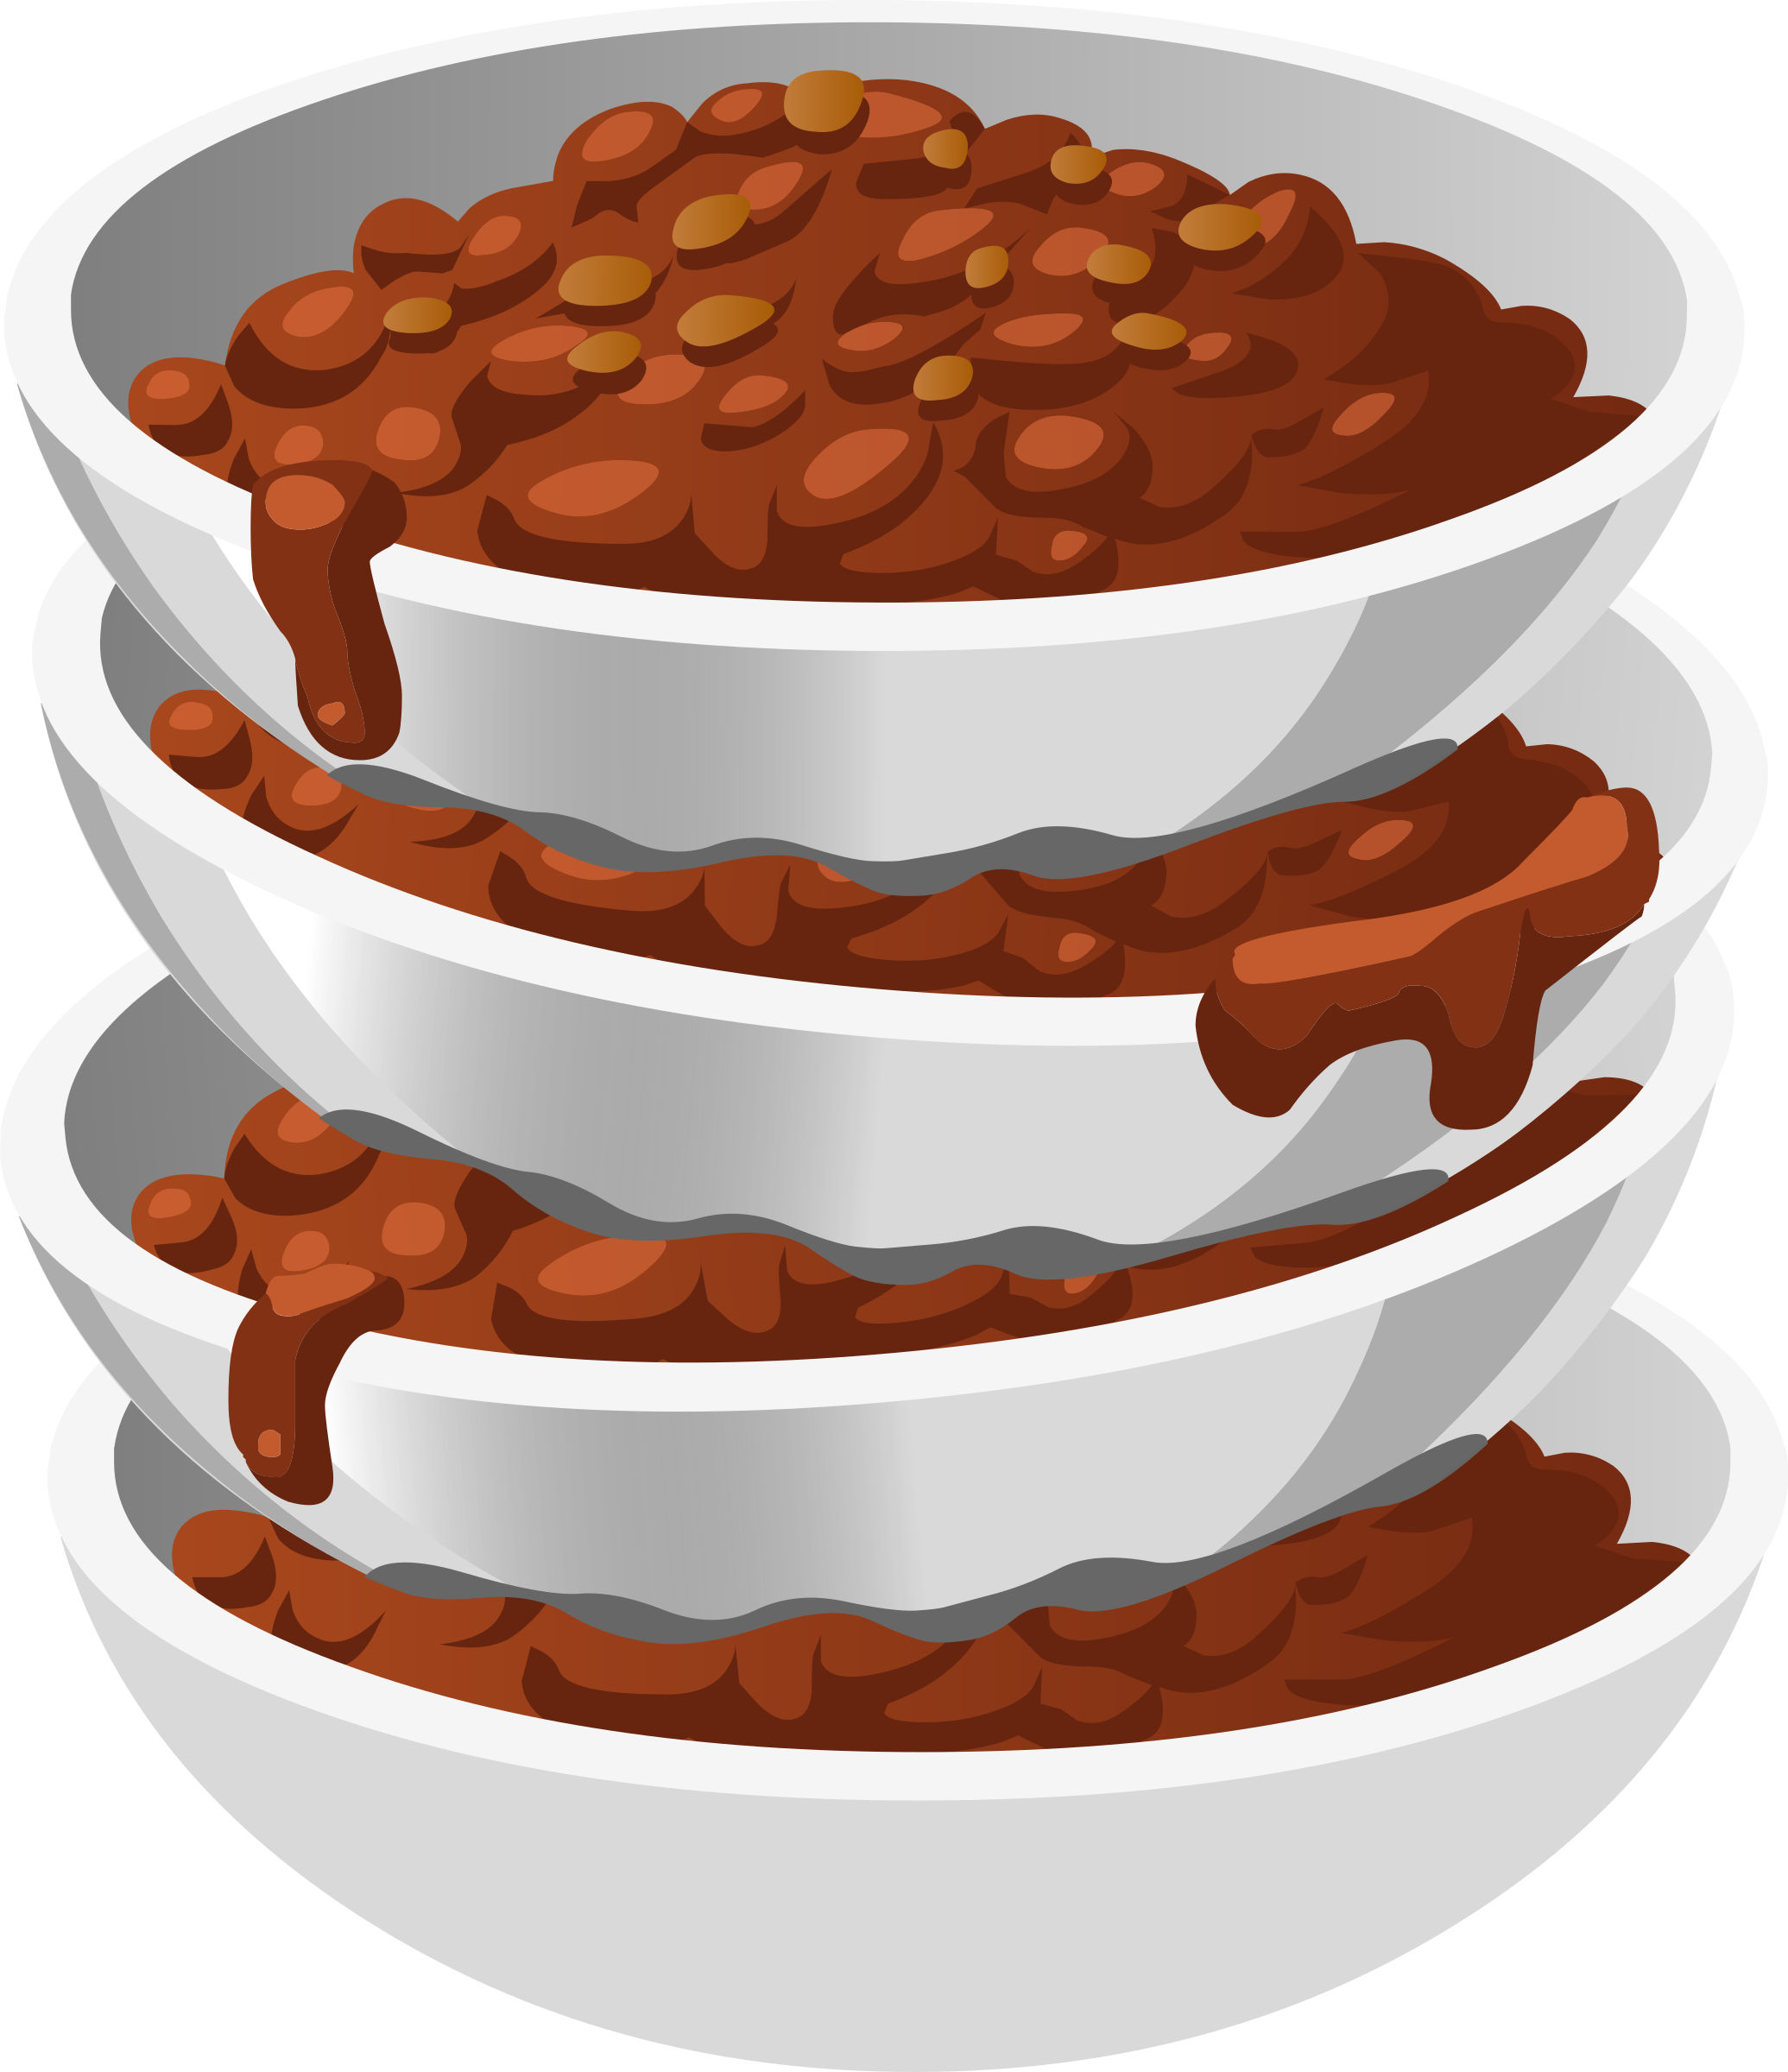 Dog dish clipart picture Clipart - Food Chillybusting Chili picture